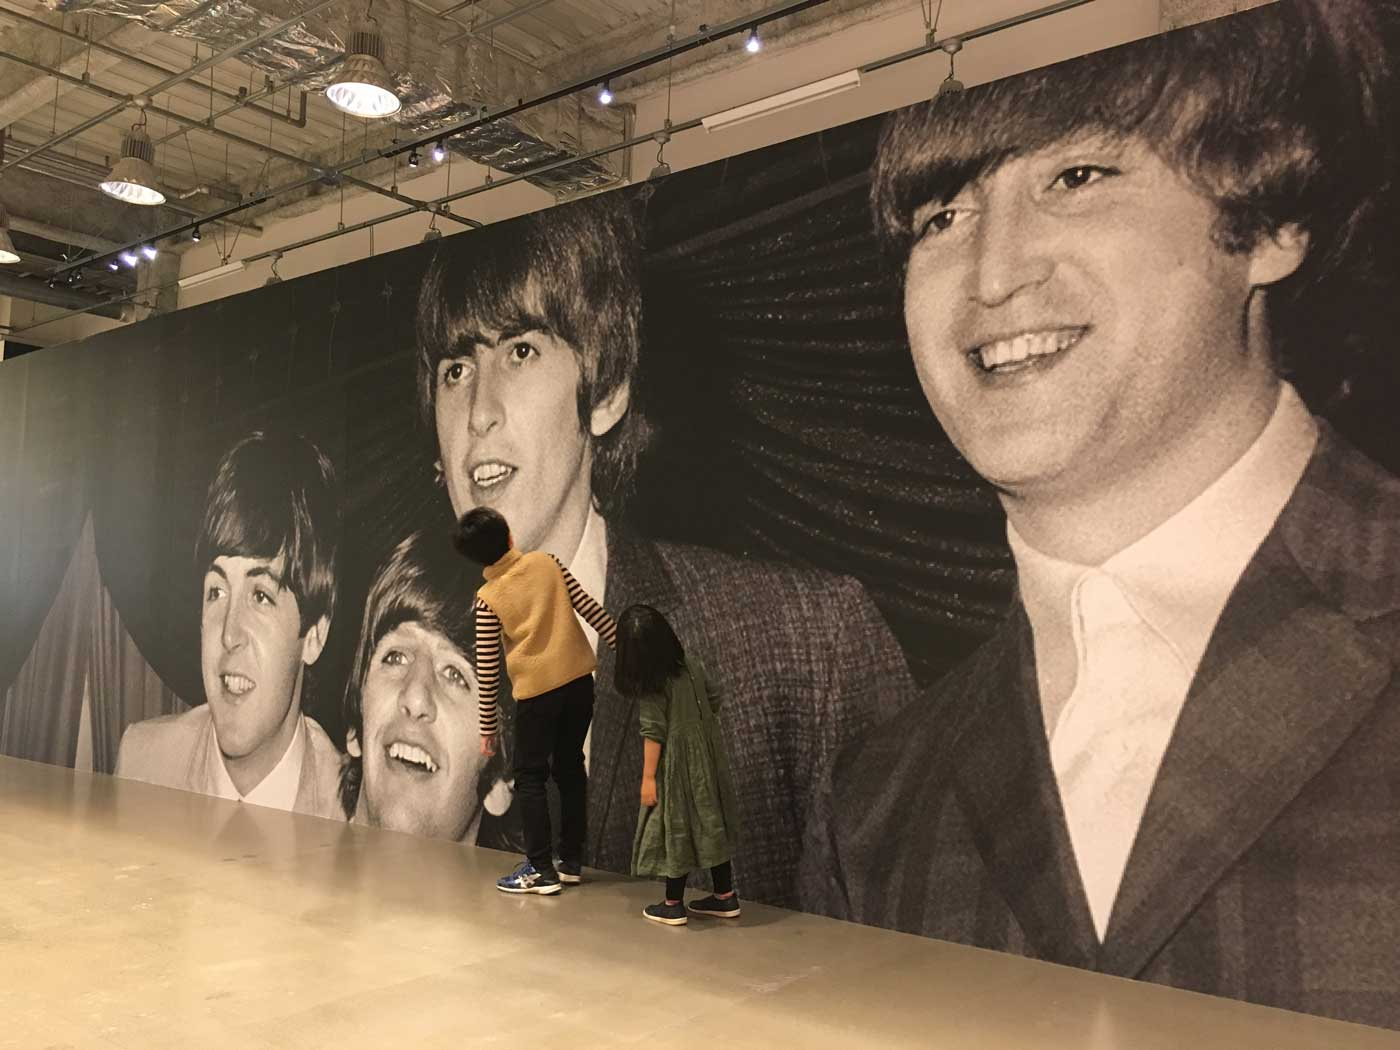 ビートルズ展「Ladies and Gentlemen...The Beatles!」